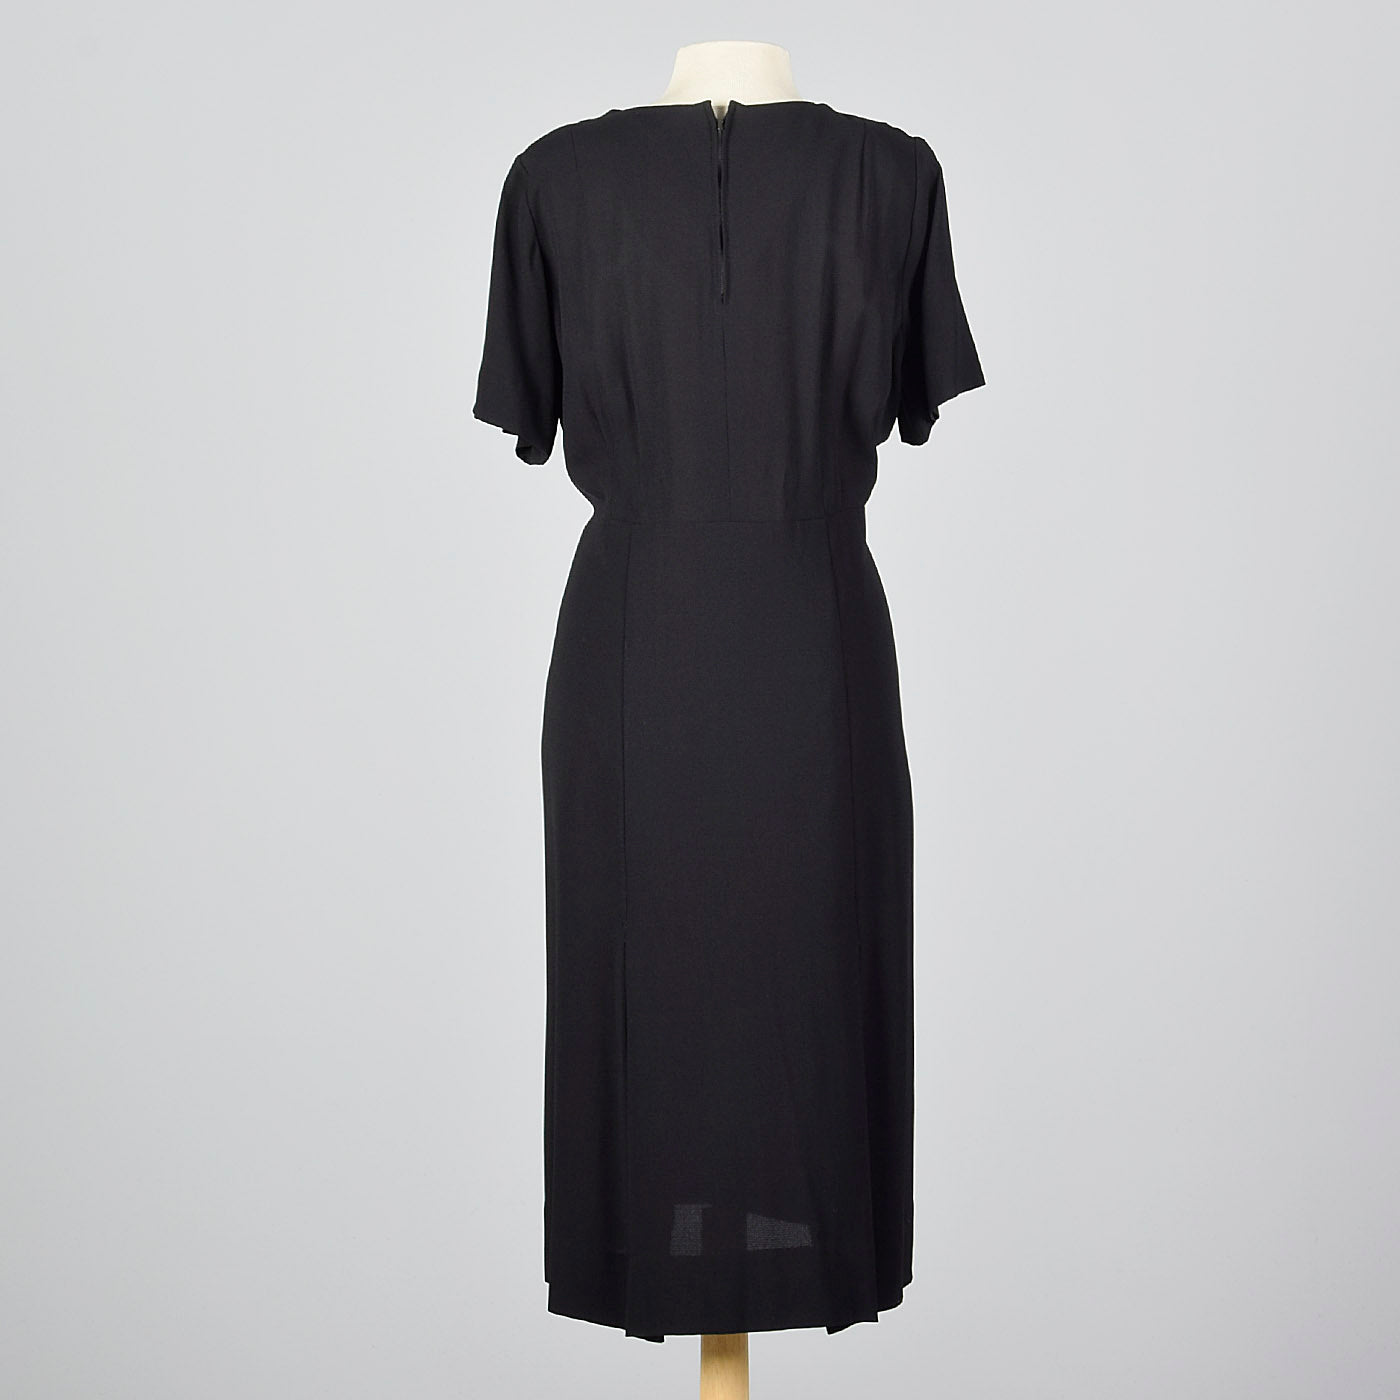 1950s Little Black Dress with Rhinestone Detail